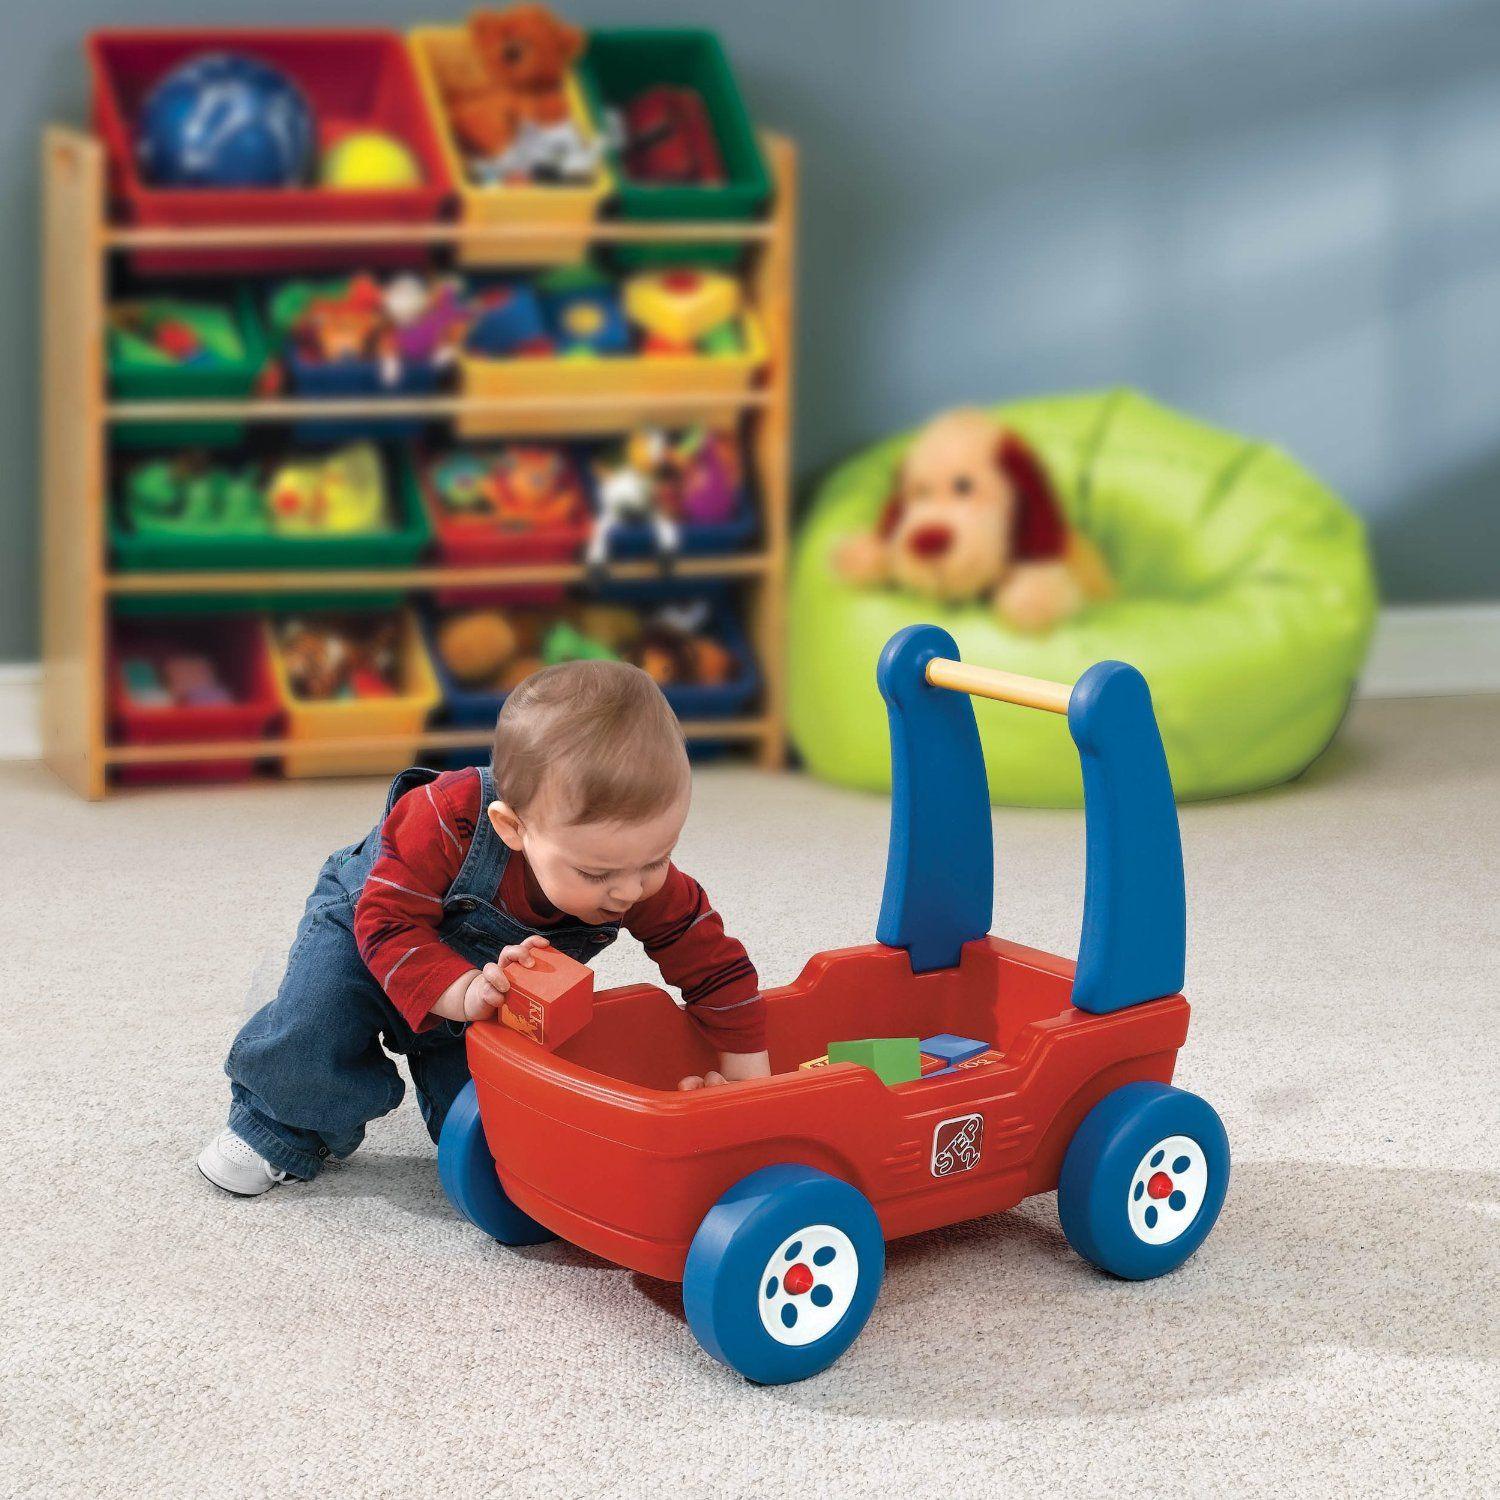 Baby'S First Birthday Gift Ideas  Best Gifts Ideas for e Year Old Boys First Birthday